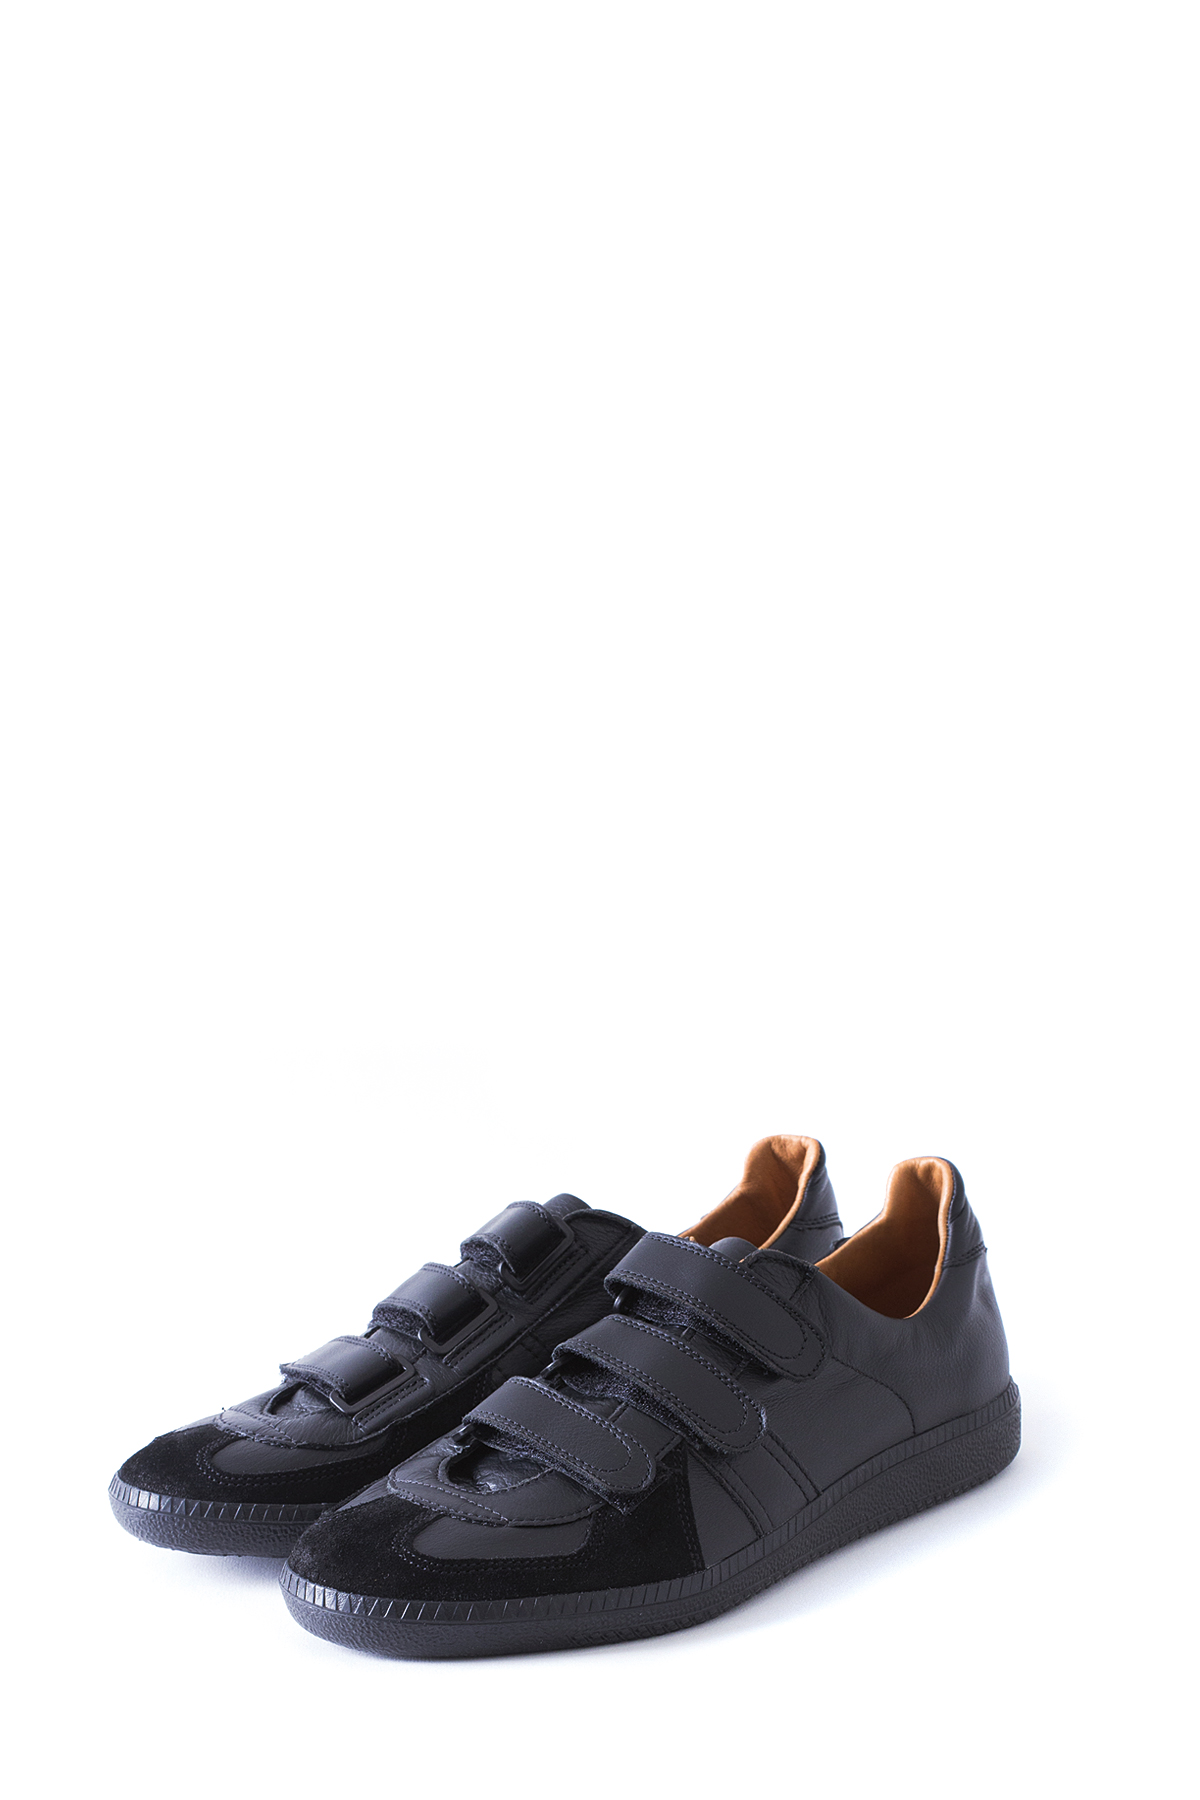 REPRODUCTION OF FOUND : German Velcro Military Trainer (Black)